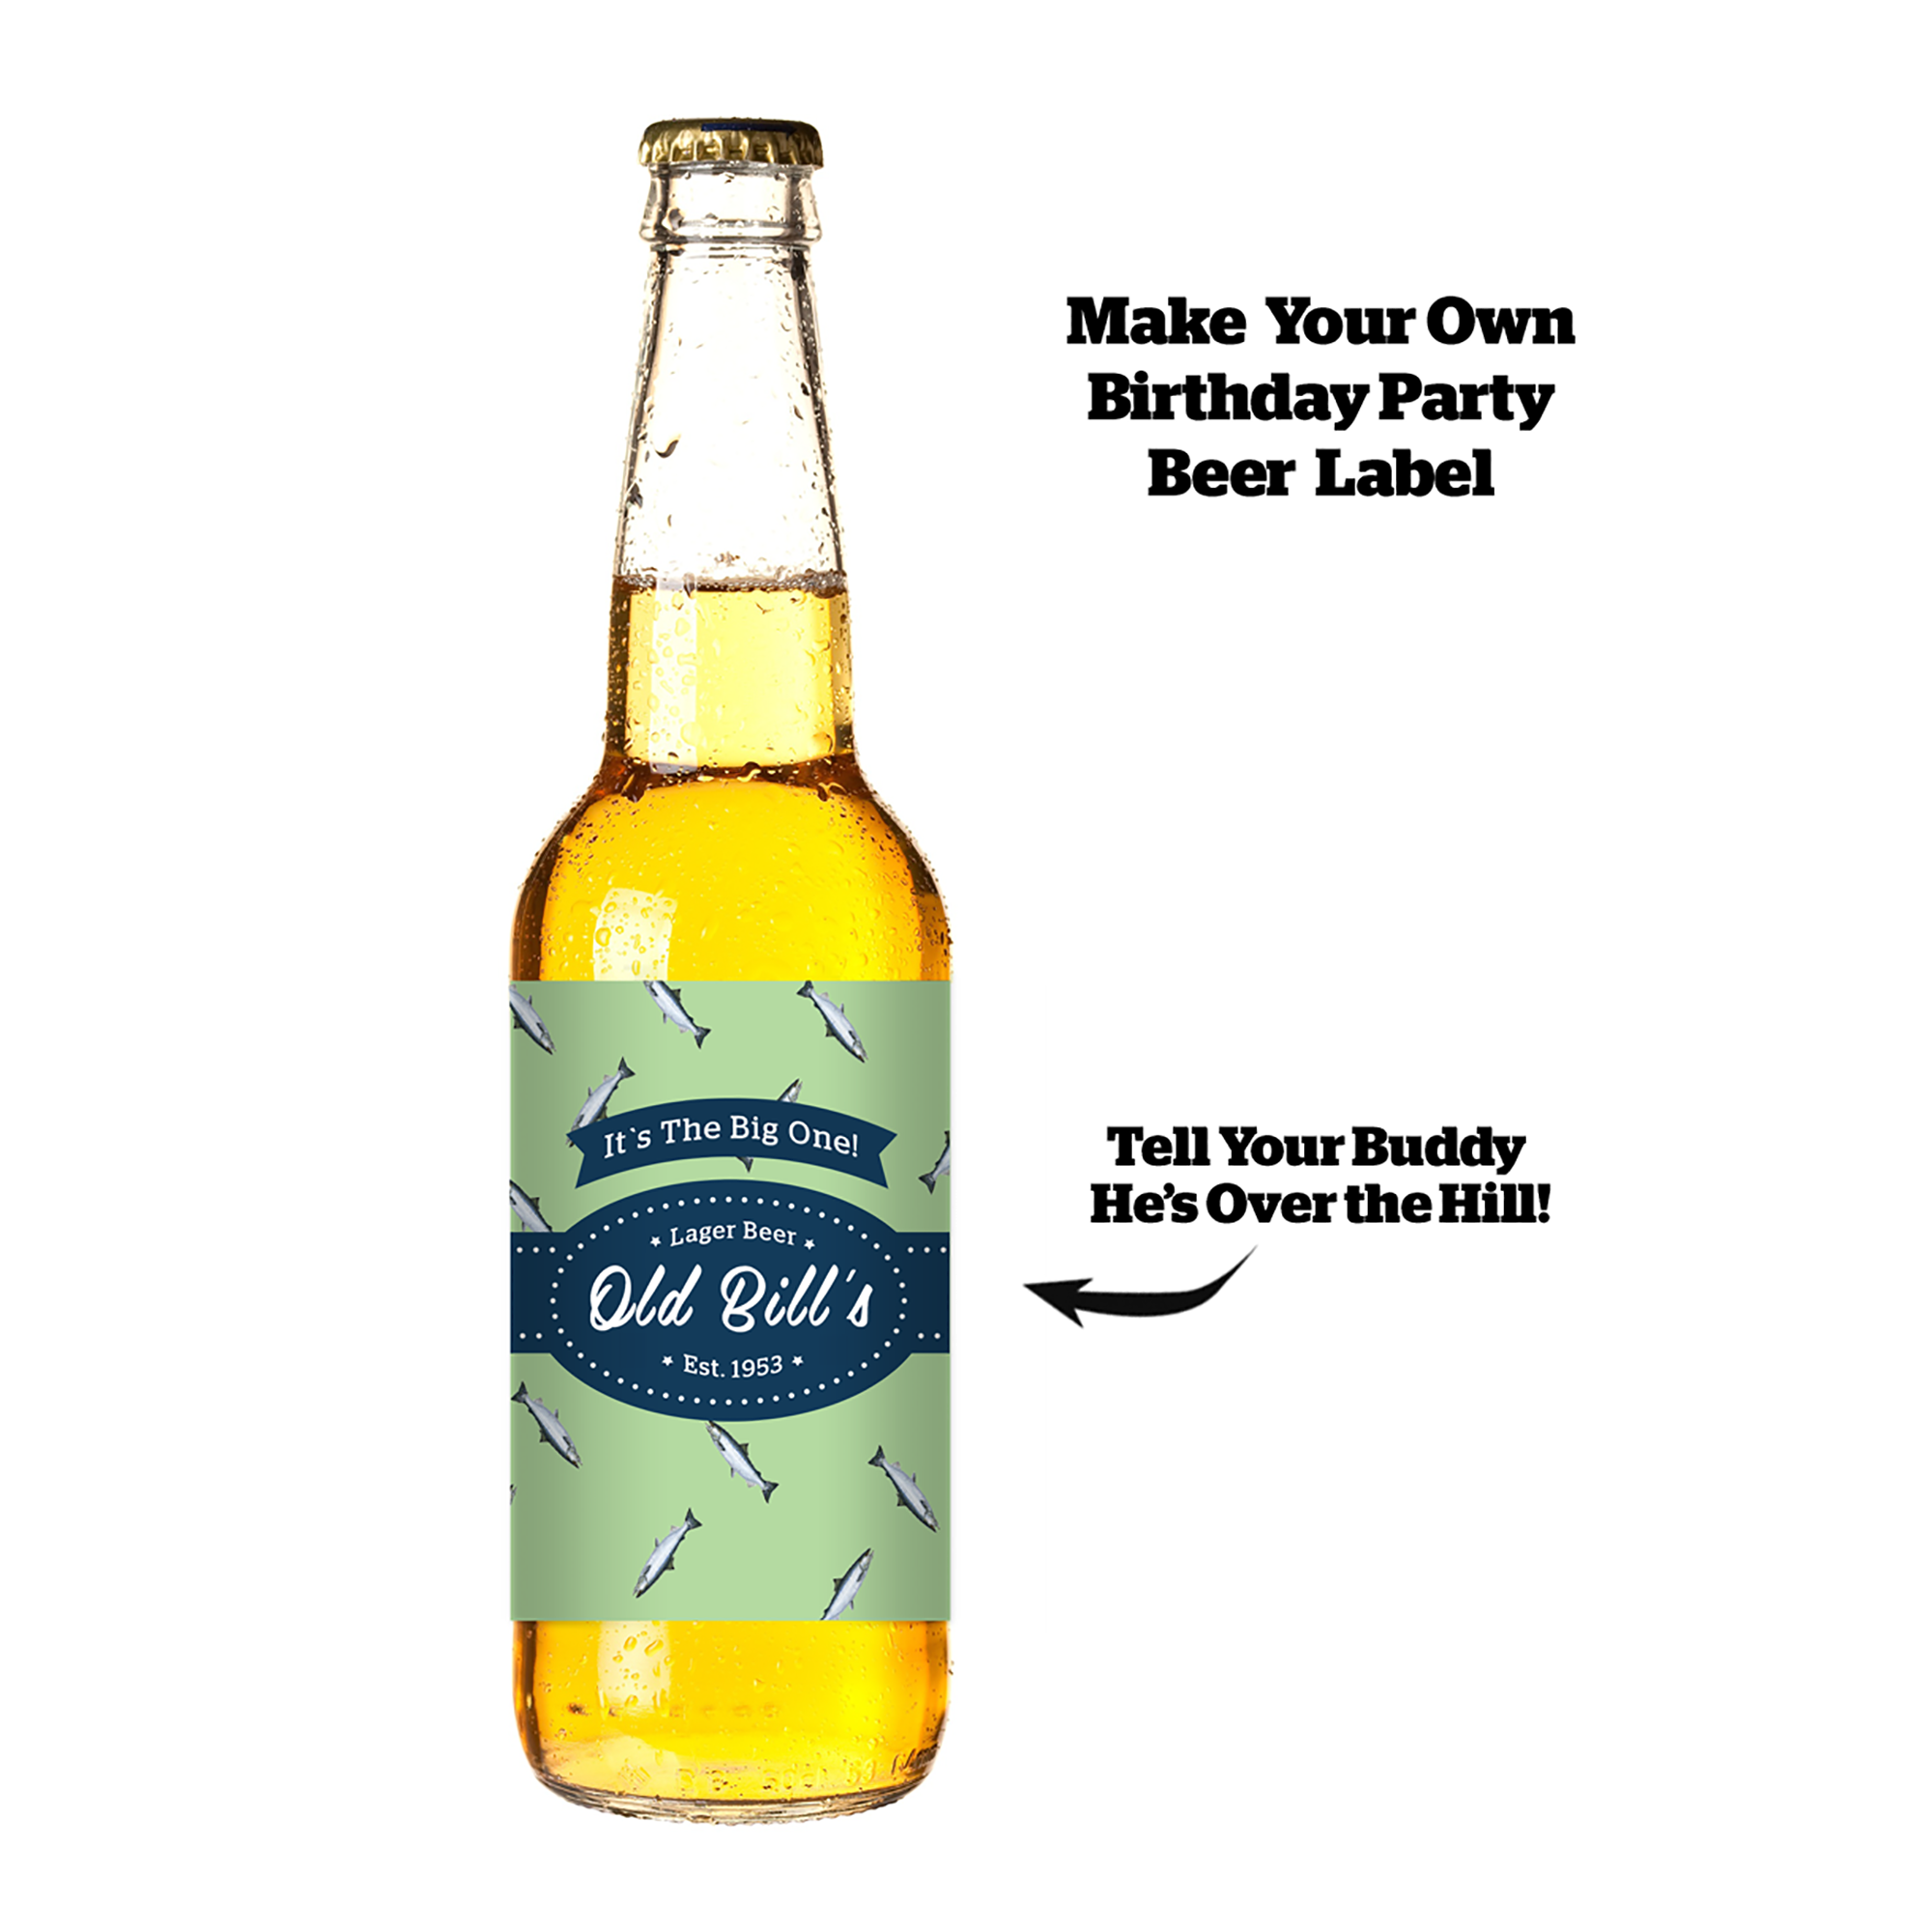 Personalized Beer Bottle Label